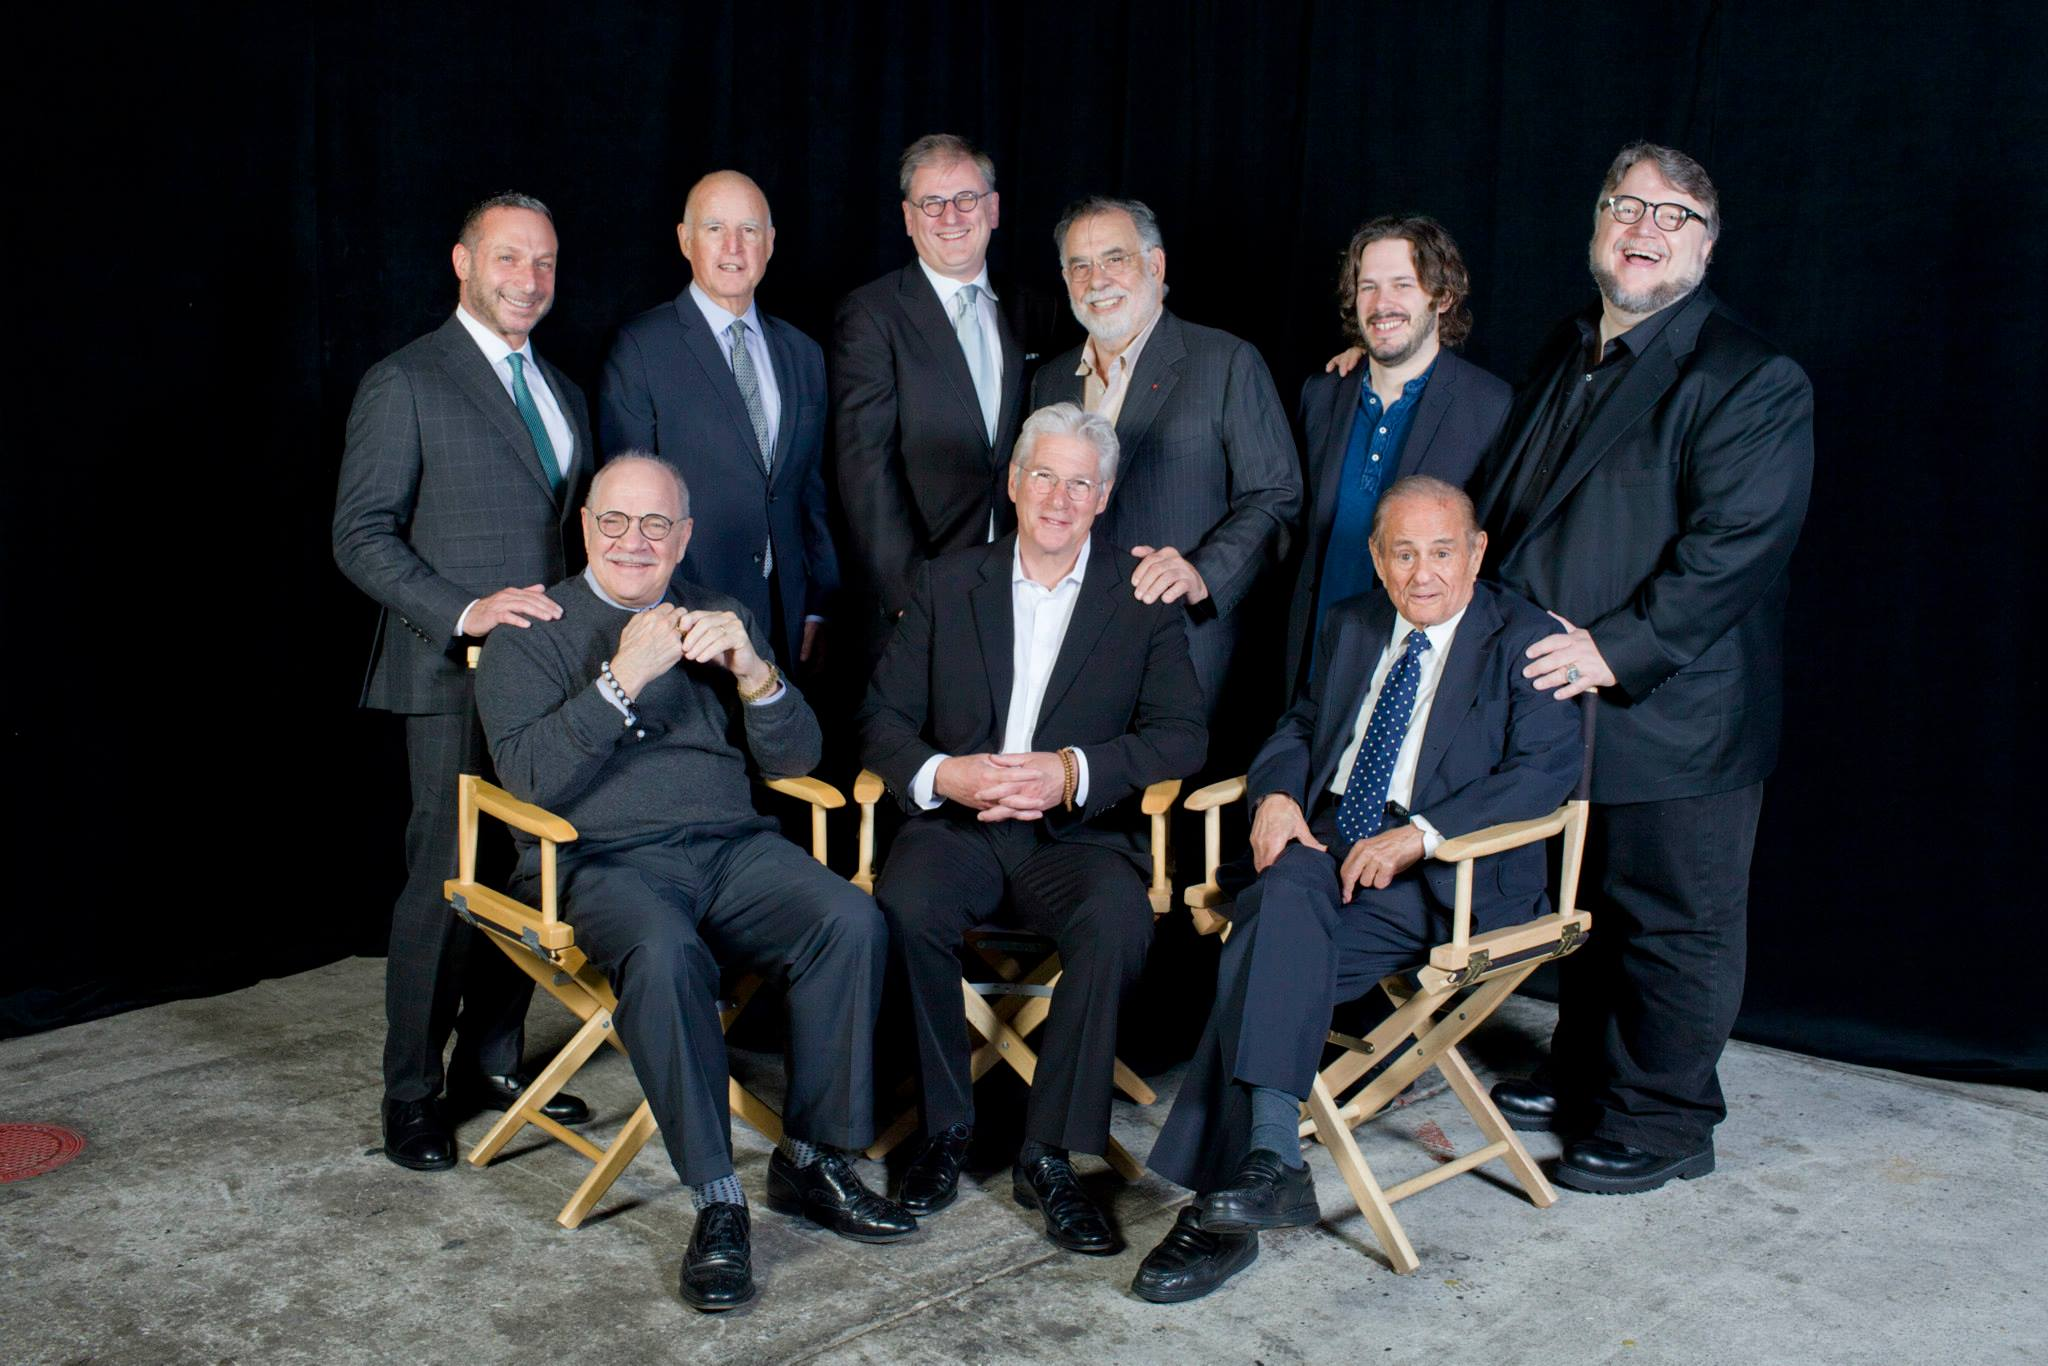 Presenters and awardees at Film Society Awards Night; Clockwise from top left: presenter Alan Poul, presenter Governor Jerry Brown, SFFS Executive Director Noah Cowan, presenterFrancis Ford Coppola, presenter Edgar Wright, awardee Guillermo del Toro, awardee Maurice Kanbar, awardee Richard Gere and awardee Paul Schrader;Photo by Pamela Gentile